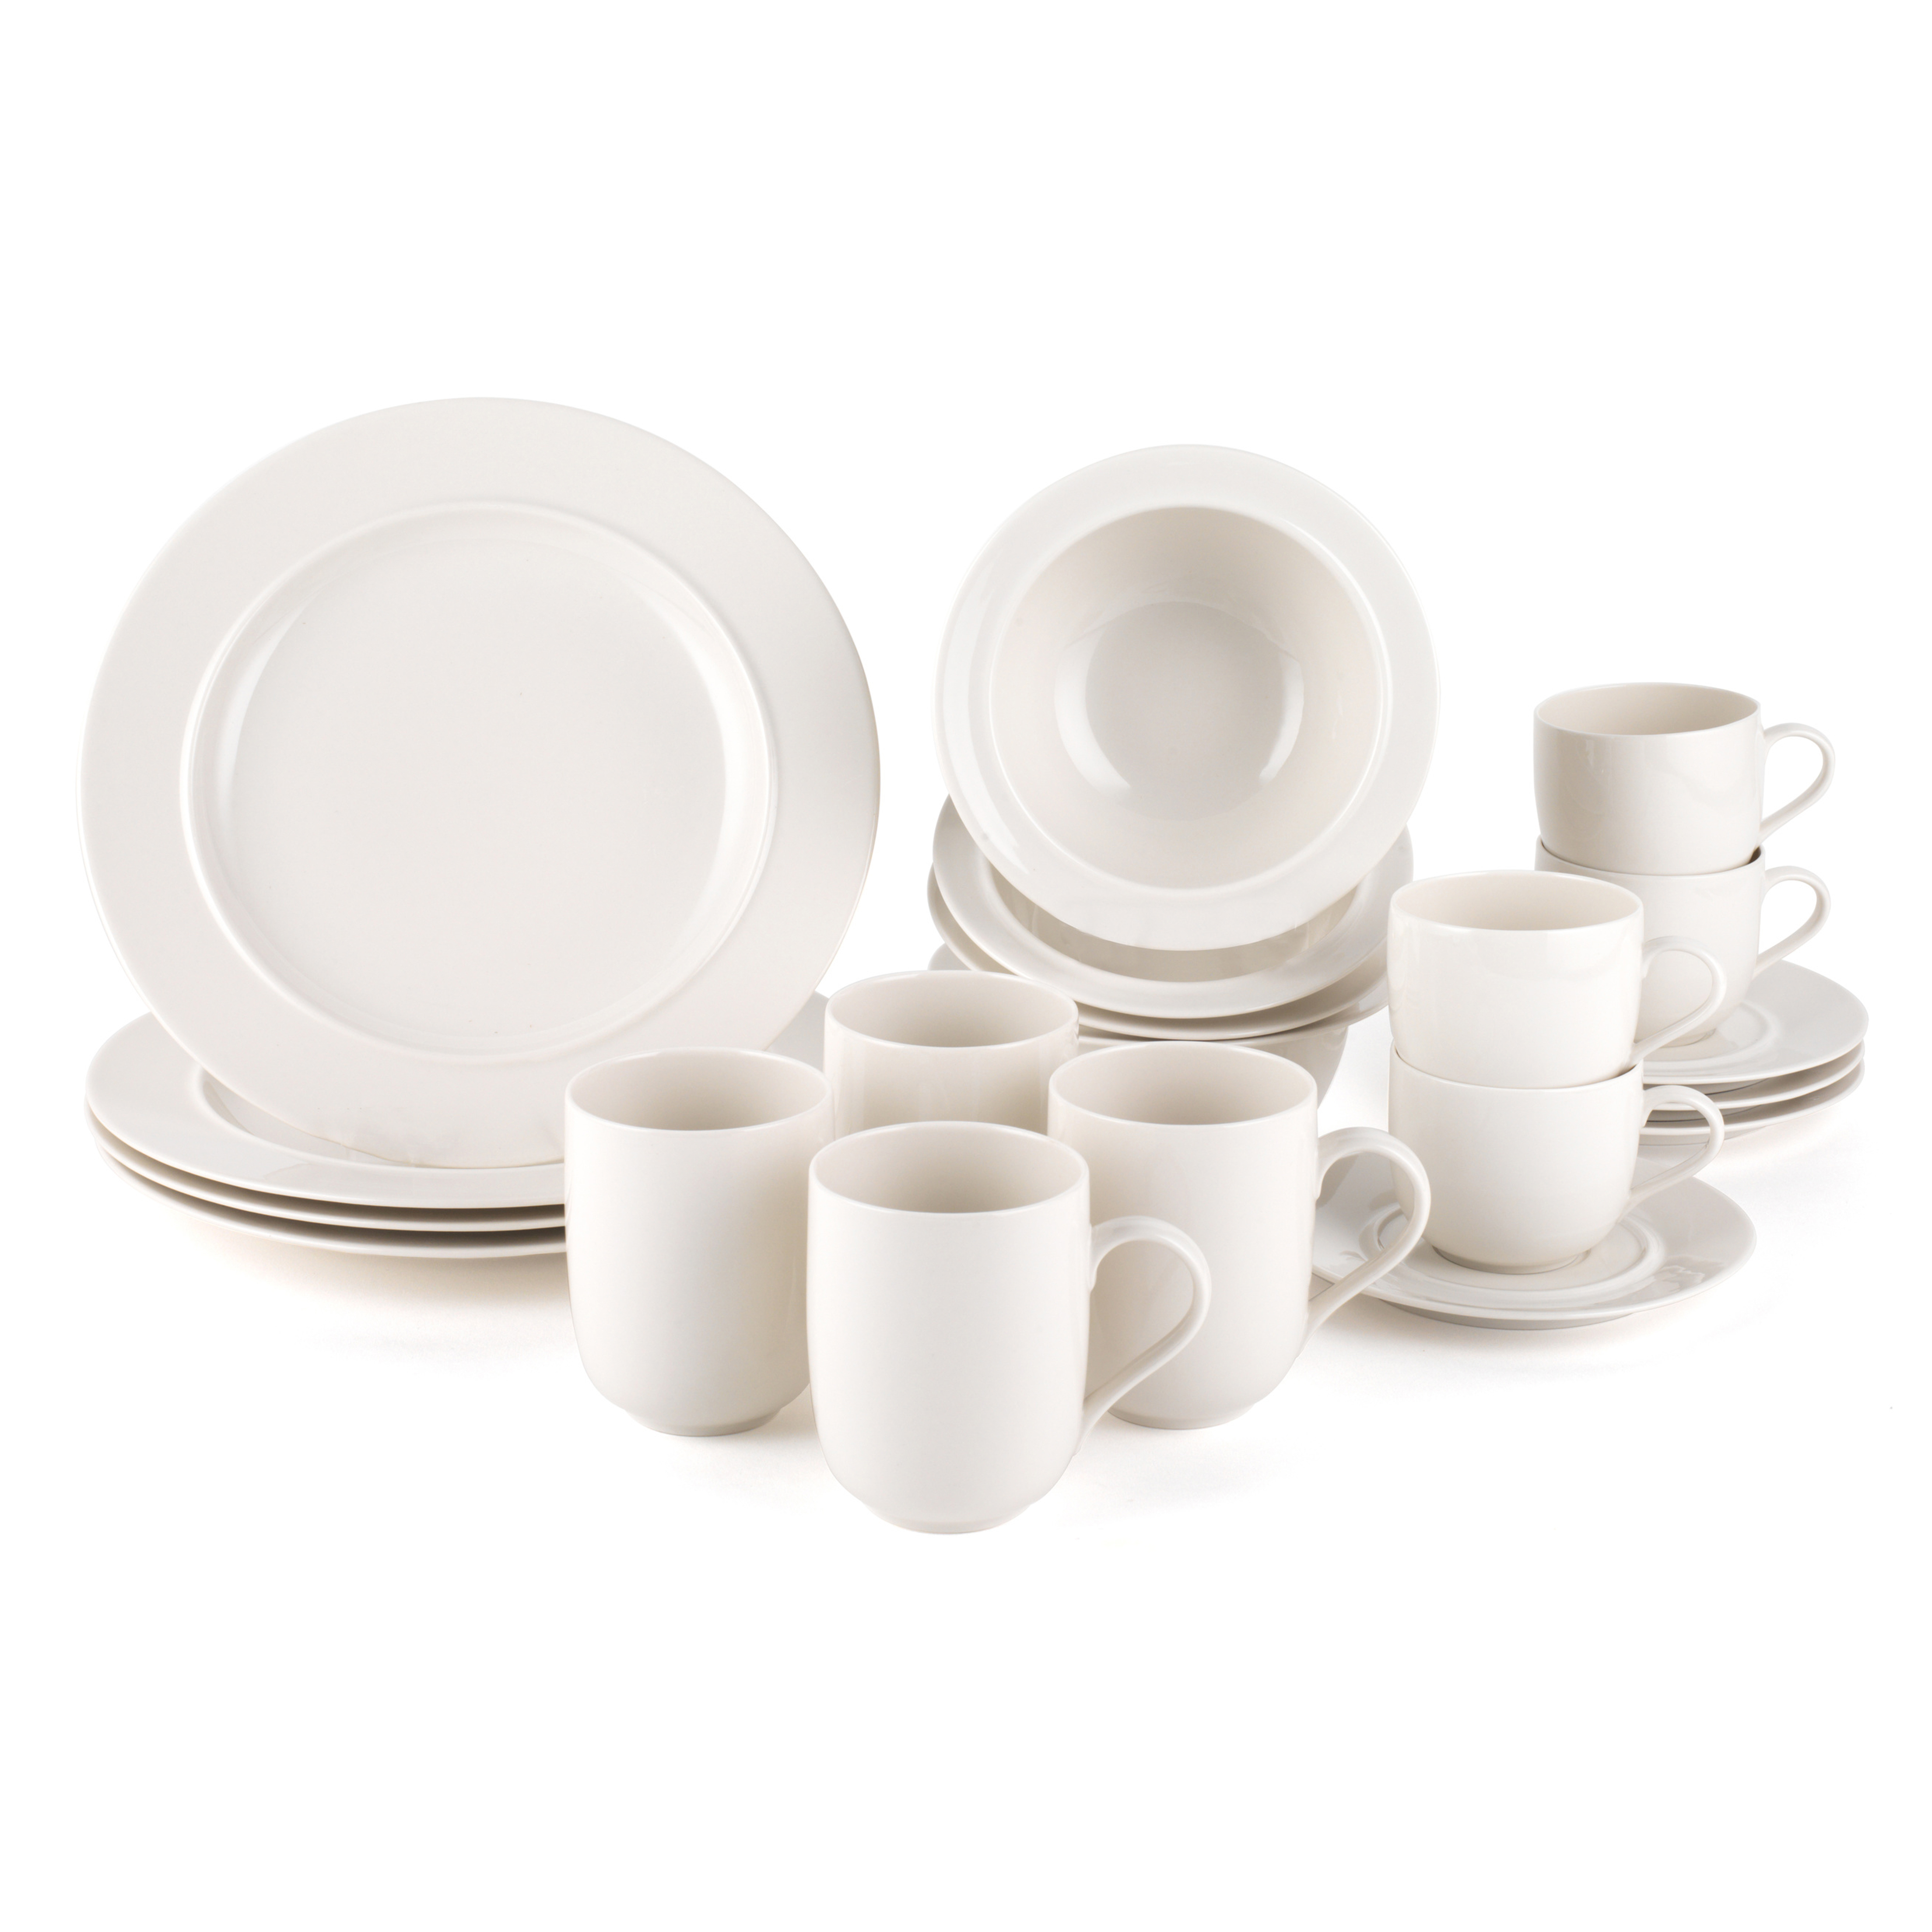 Alessi La Bella Tavola Porcelain Breakfast And Dinner Dining Set With Plates Bowls Tea Cupugs 4 Place Setting Off White Dishwasher Safe For